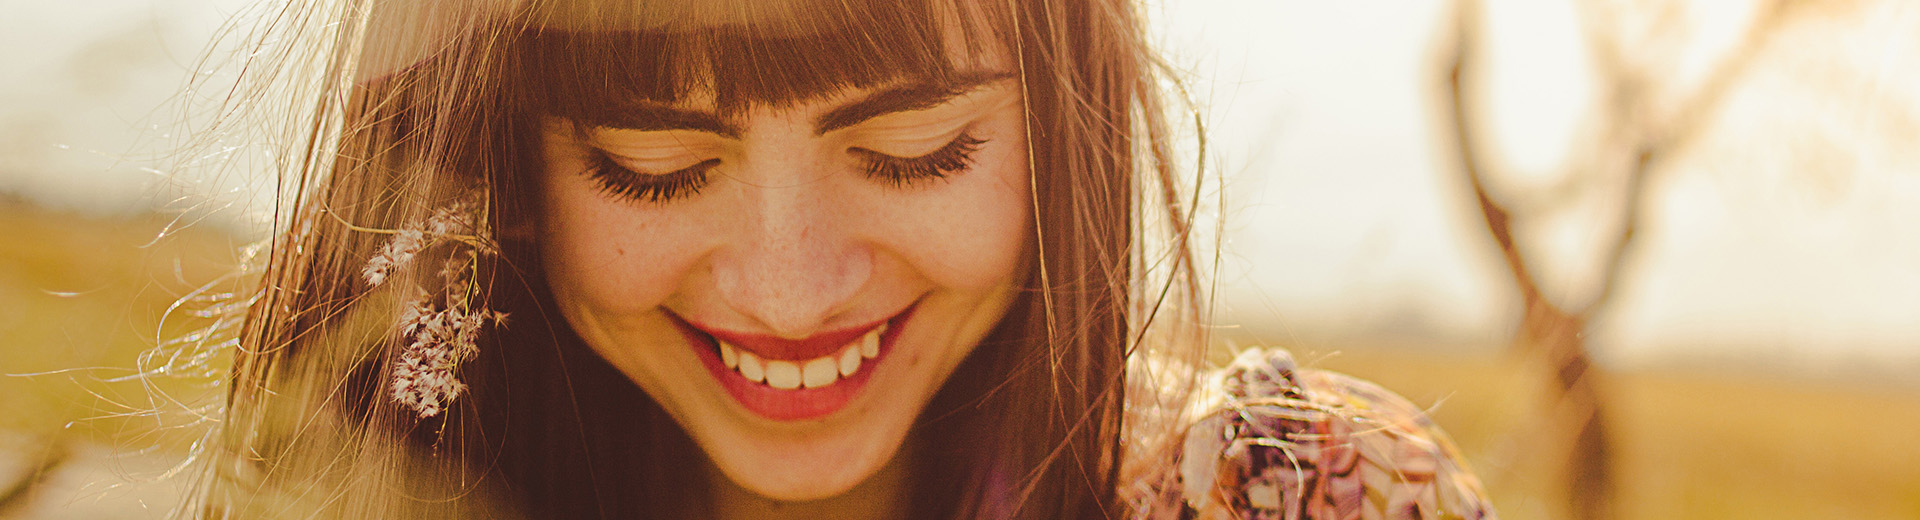 girl smiling in sunshine